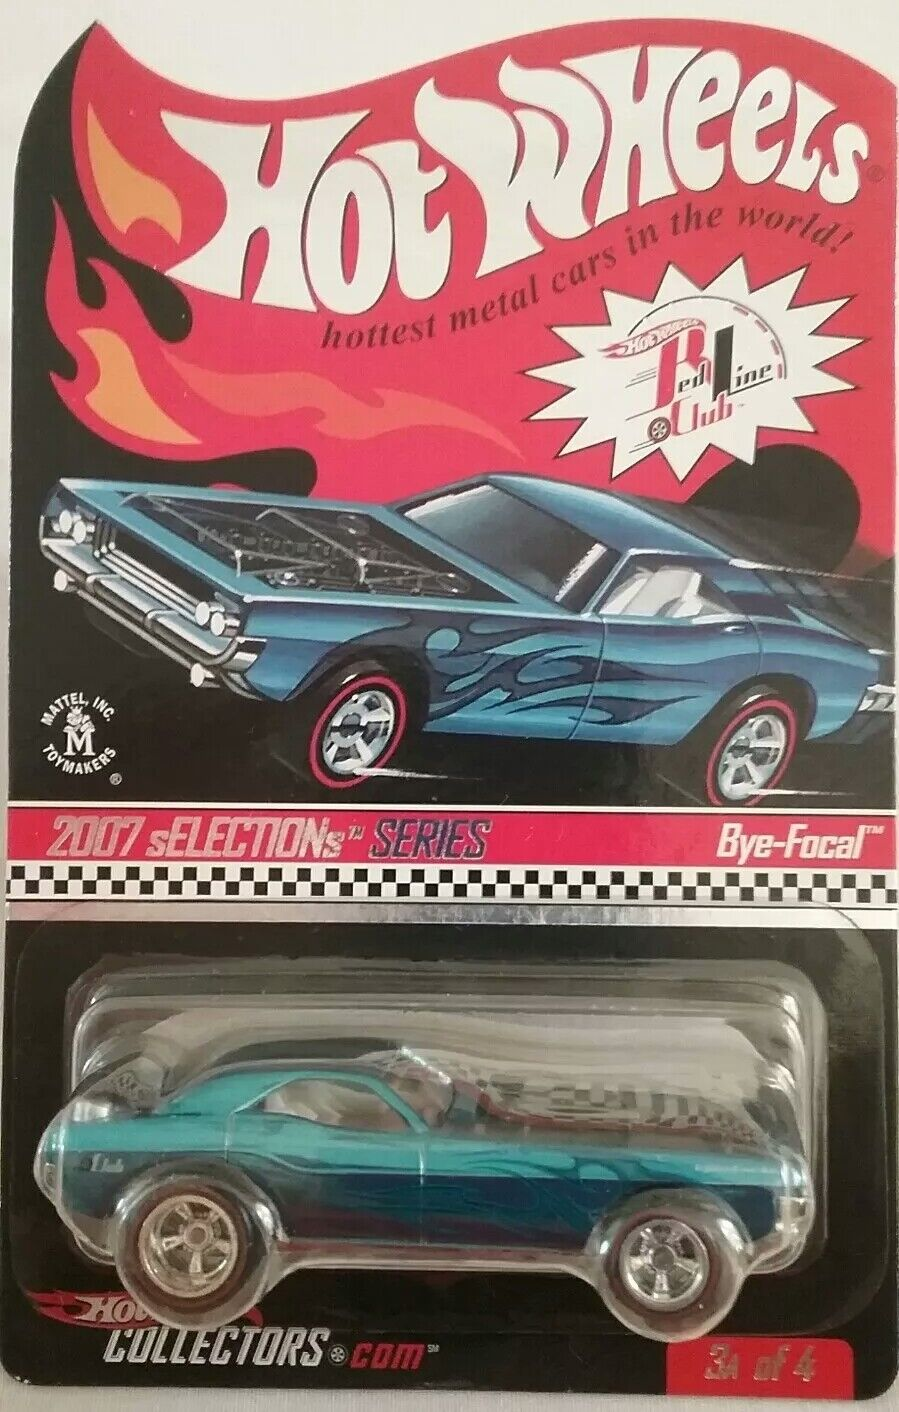 Hot Wheels RLC 2007 sELECTIONs Series BYE-FOCAL Redline Real Riders Limited 7716